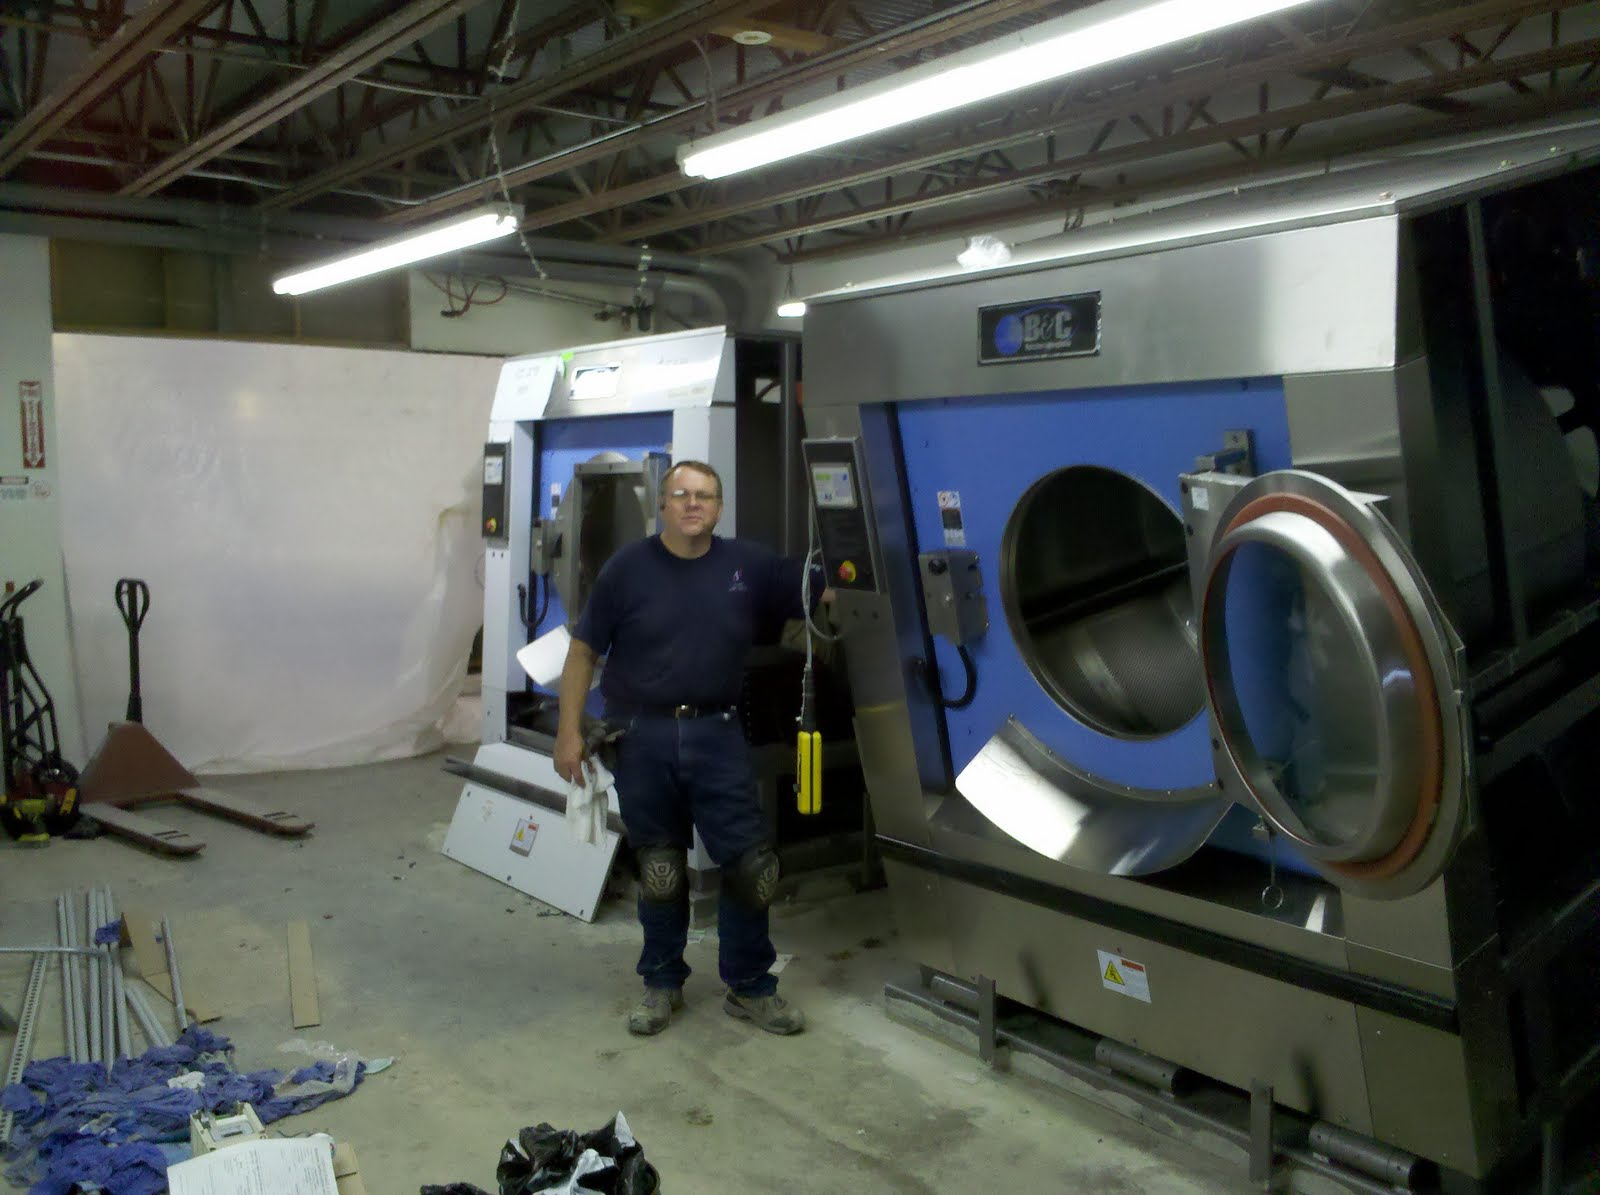 Commercial Laundry Extractors ~ Aadvantage laundry systems industrial opl washer extractor